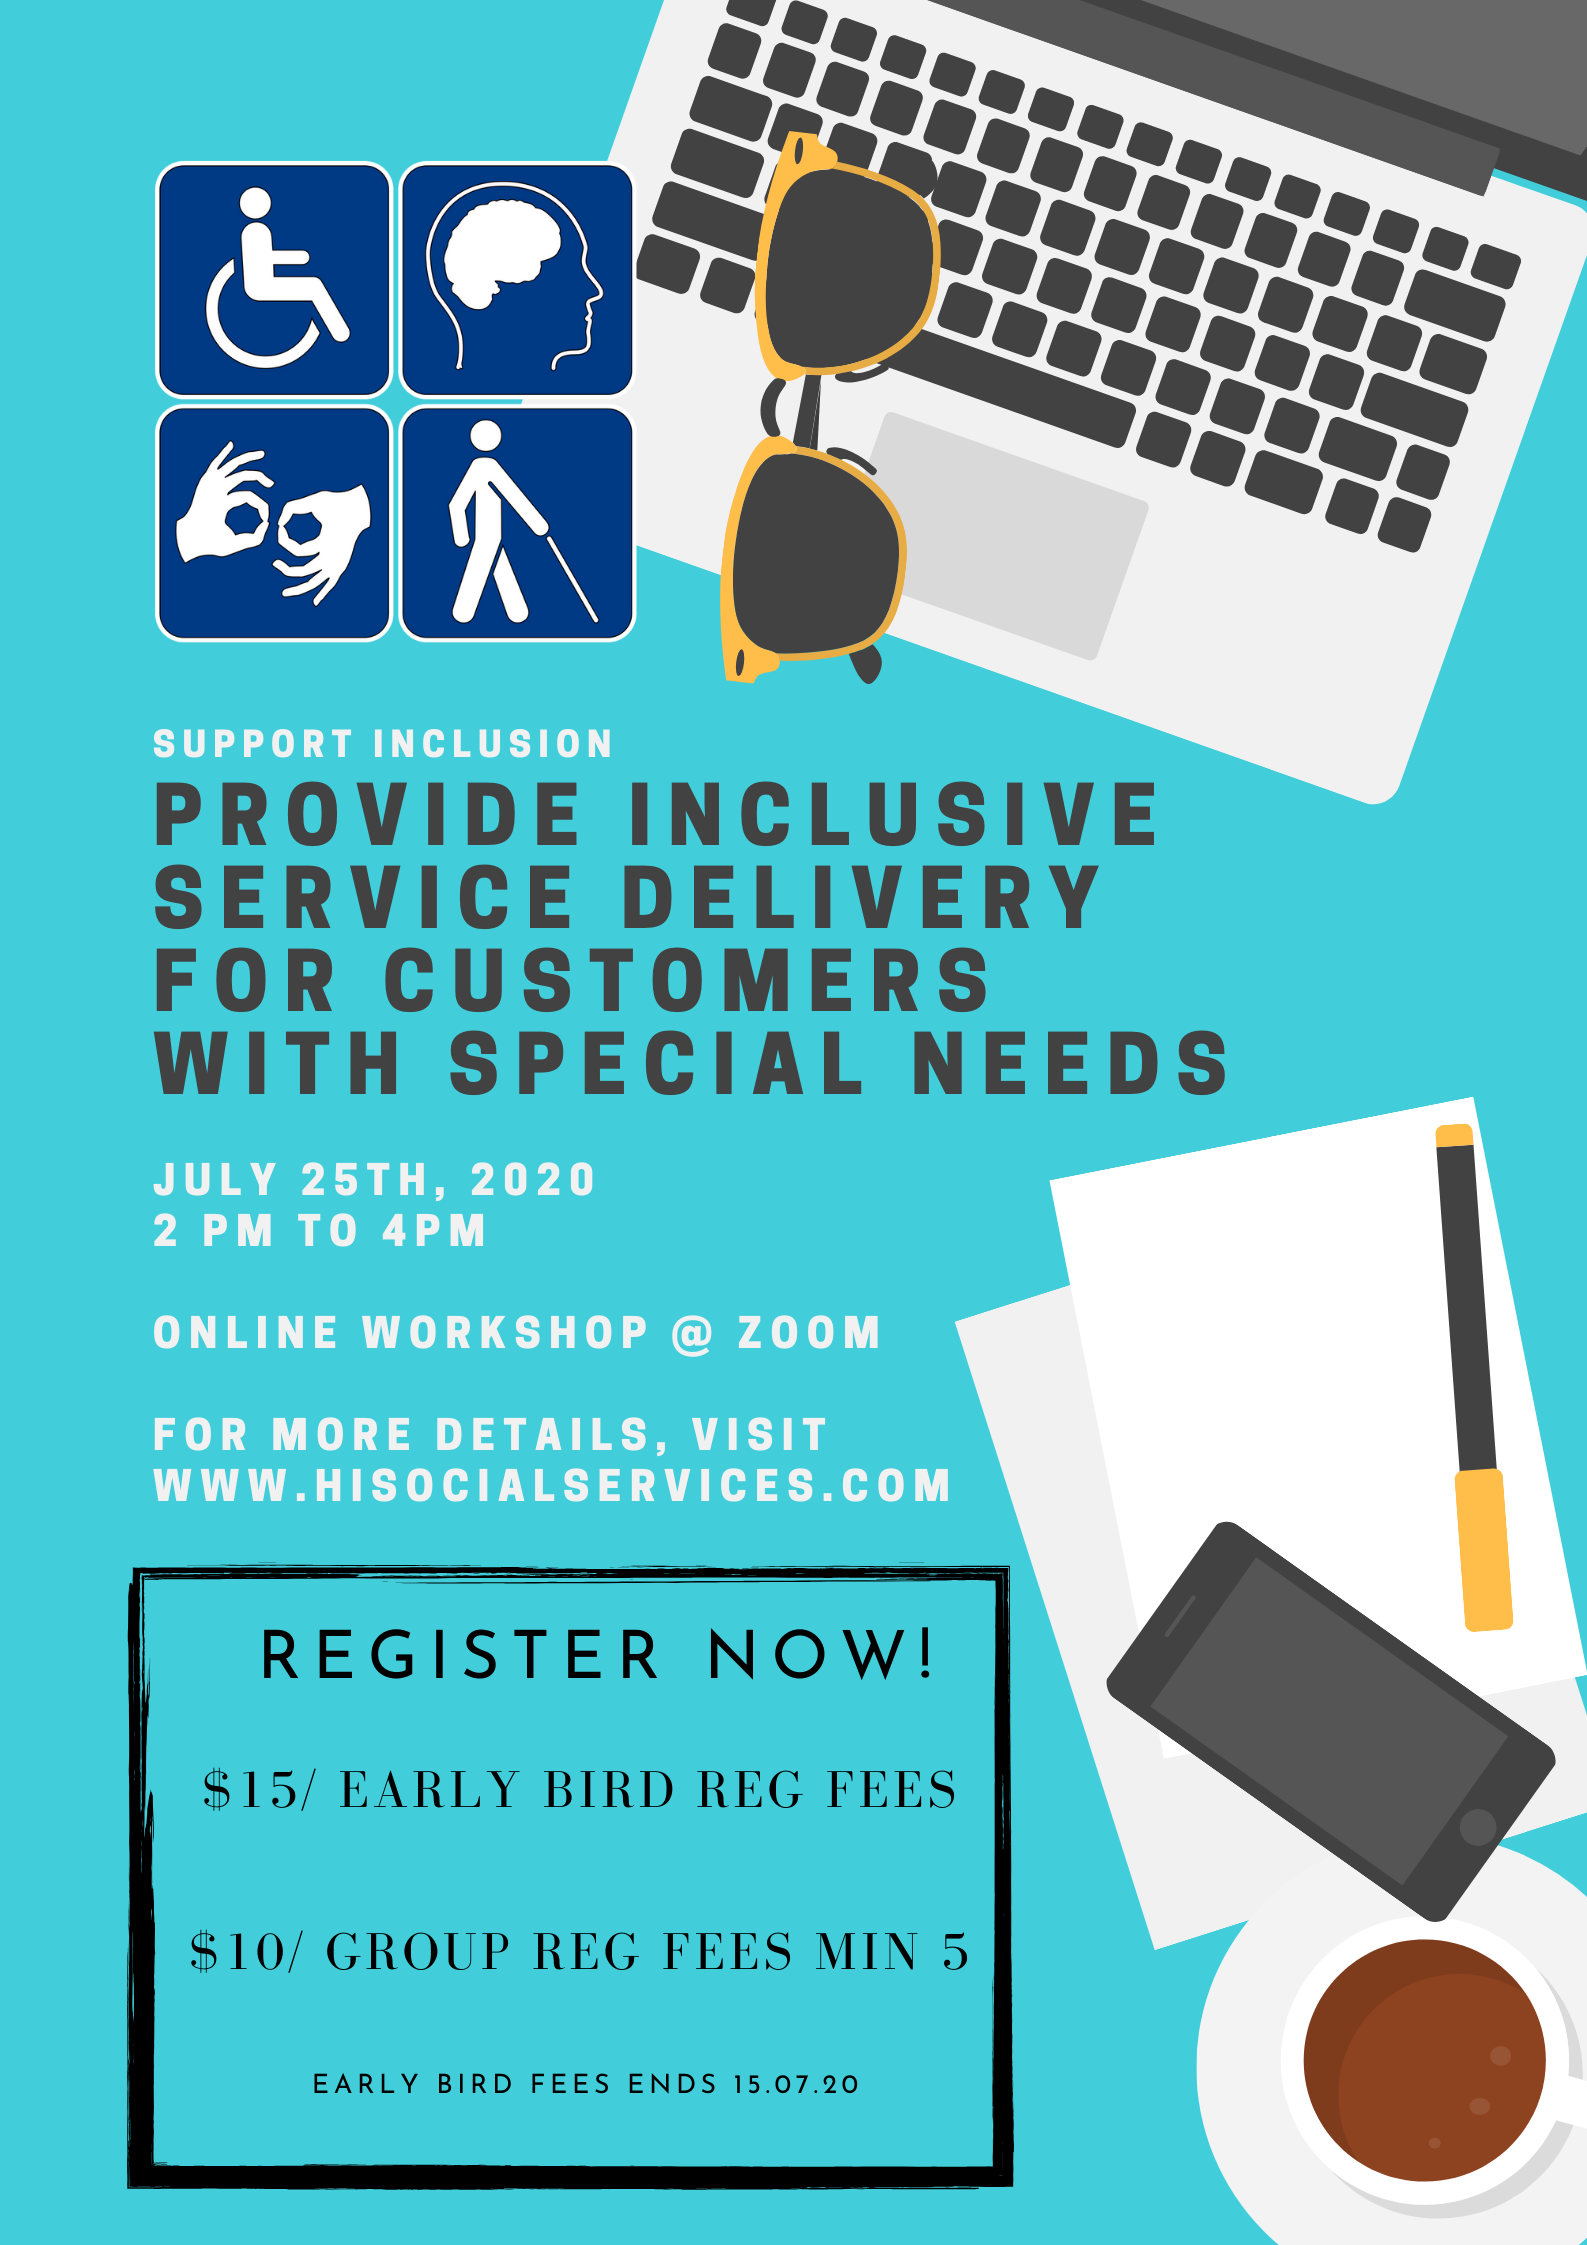 inclusive-service-delivery-poster_0_04093400_1592189166 Events